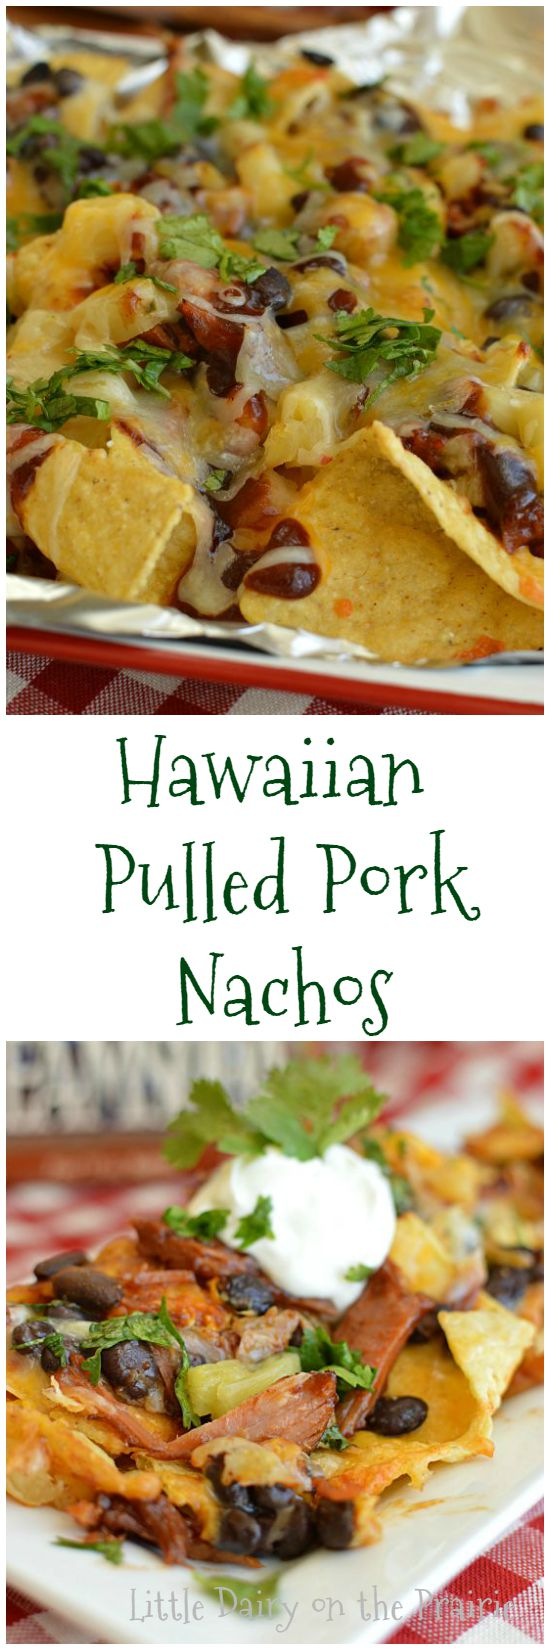 Hawaiian Pulled Pork Nachos make a quick weeknight meal, or ultimate game day food! Make lots because they go fast!  Little Dairy on the Prairie